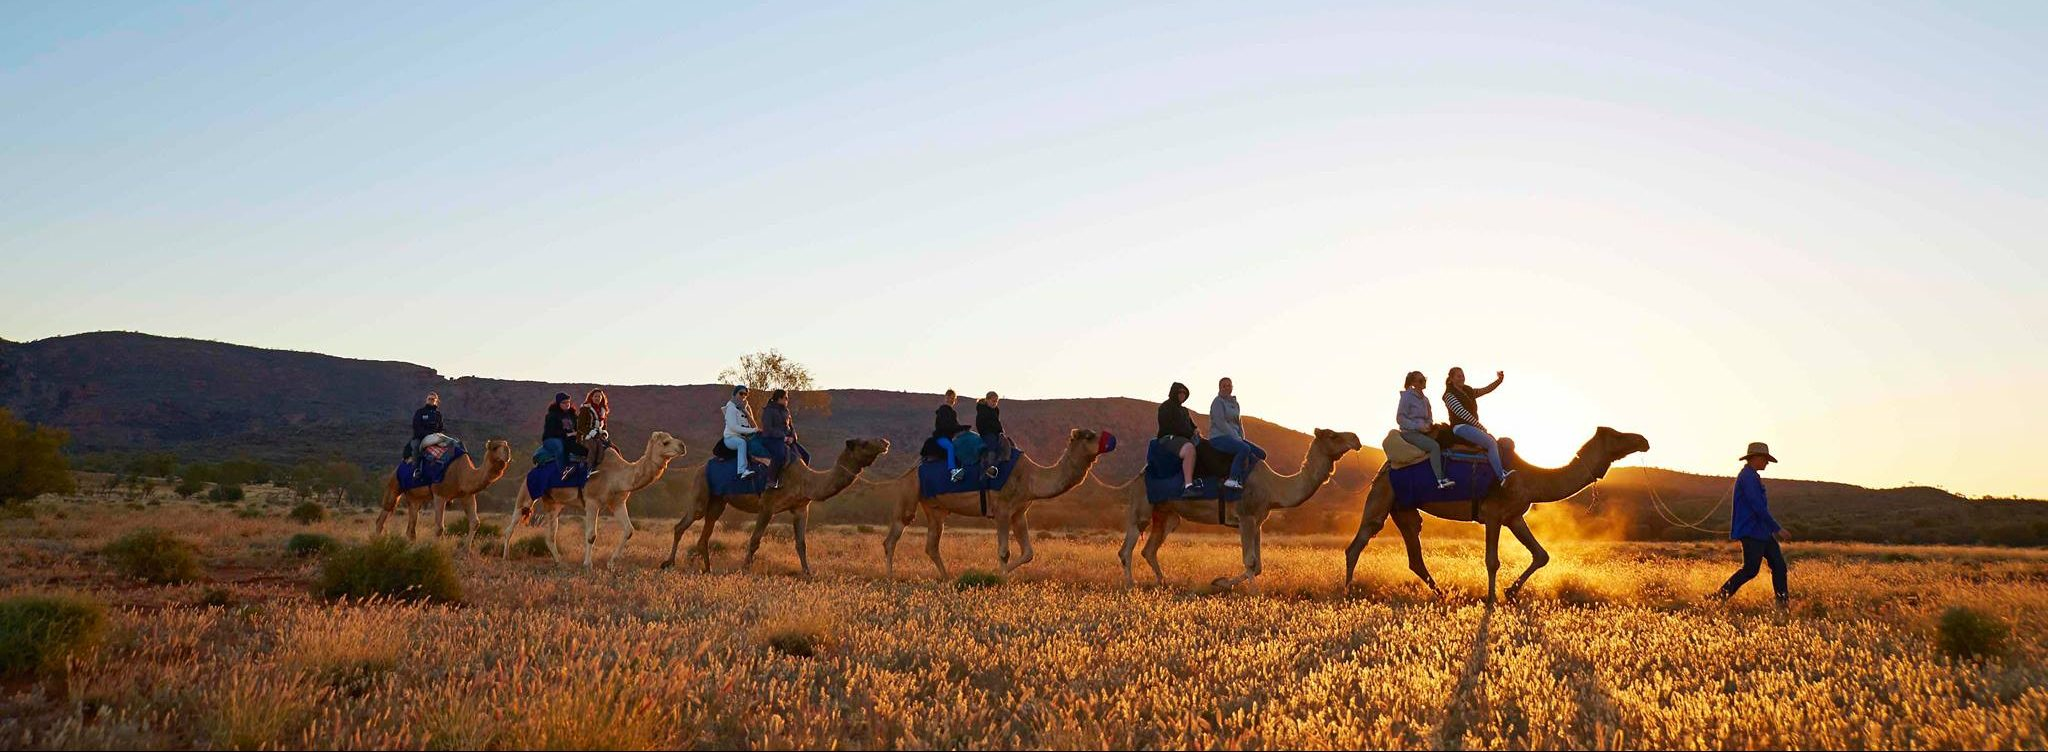 Afternoon Camel Ride